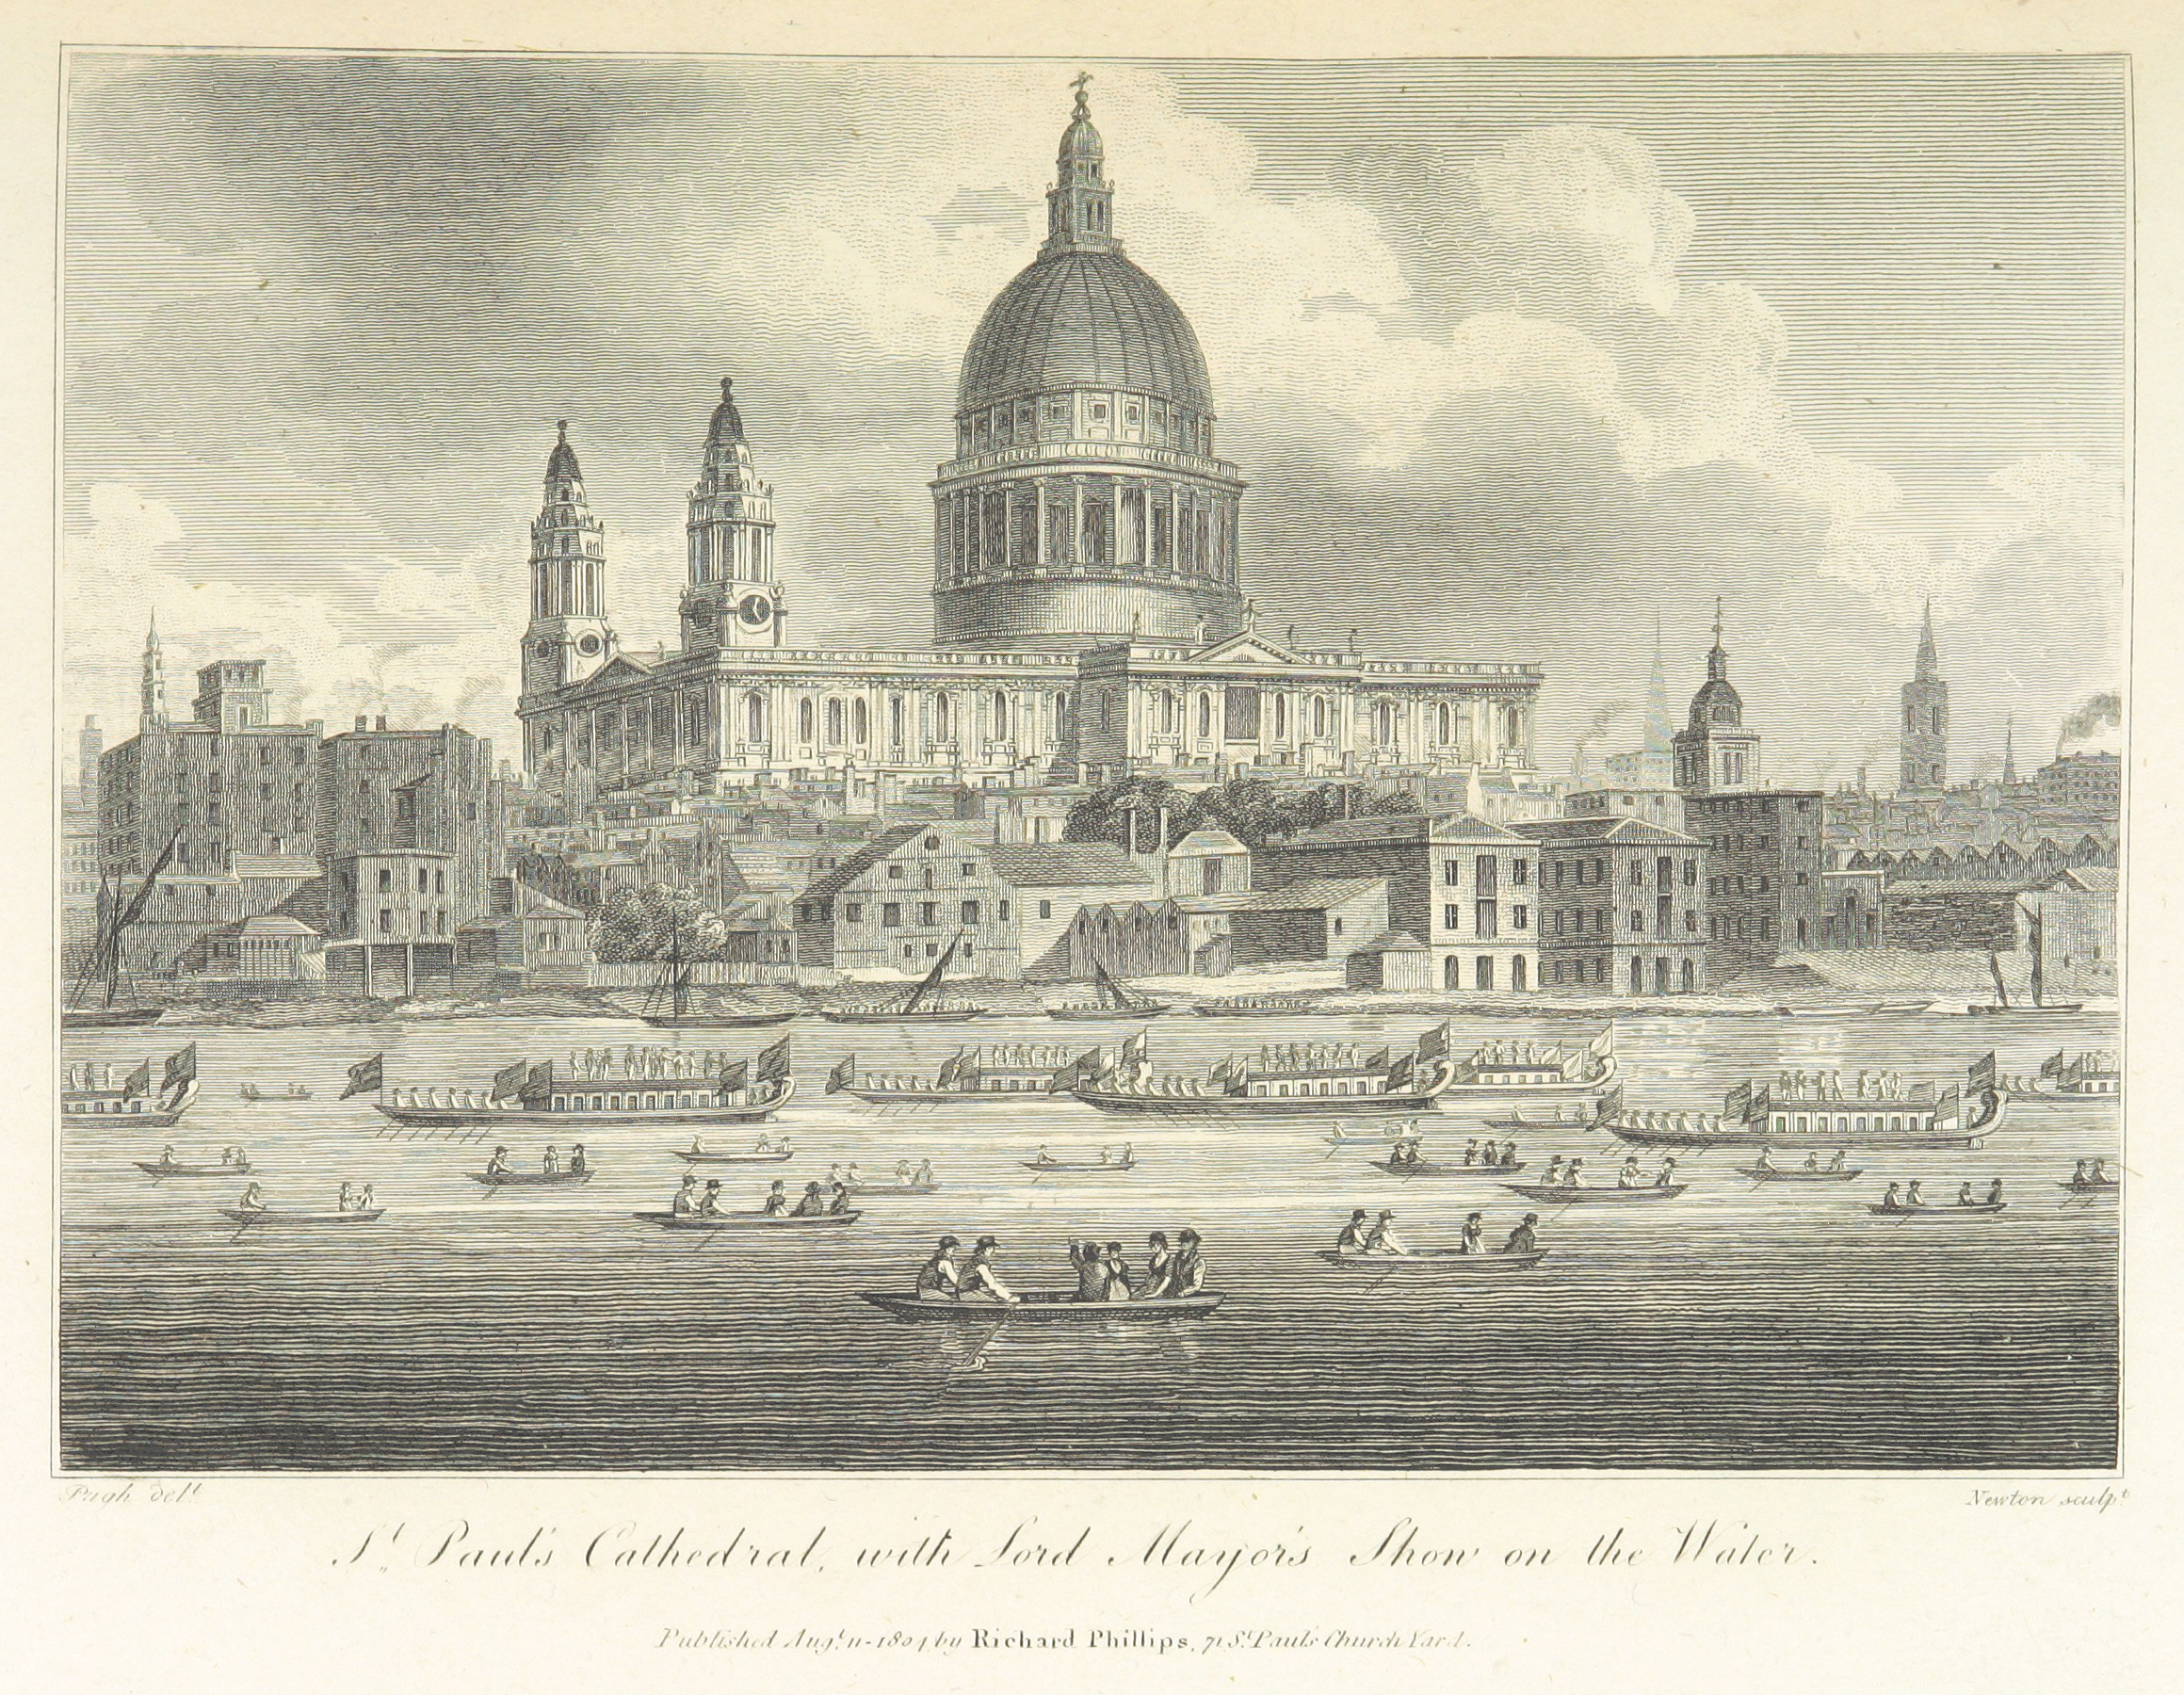 Phillips(1804)_p341_-_St_Pauls_Cathedral_with_Lord_Mayors_Show_on_the_Water